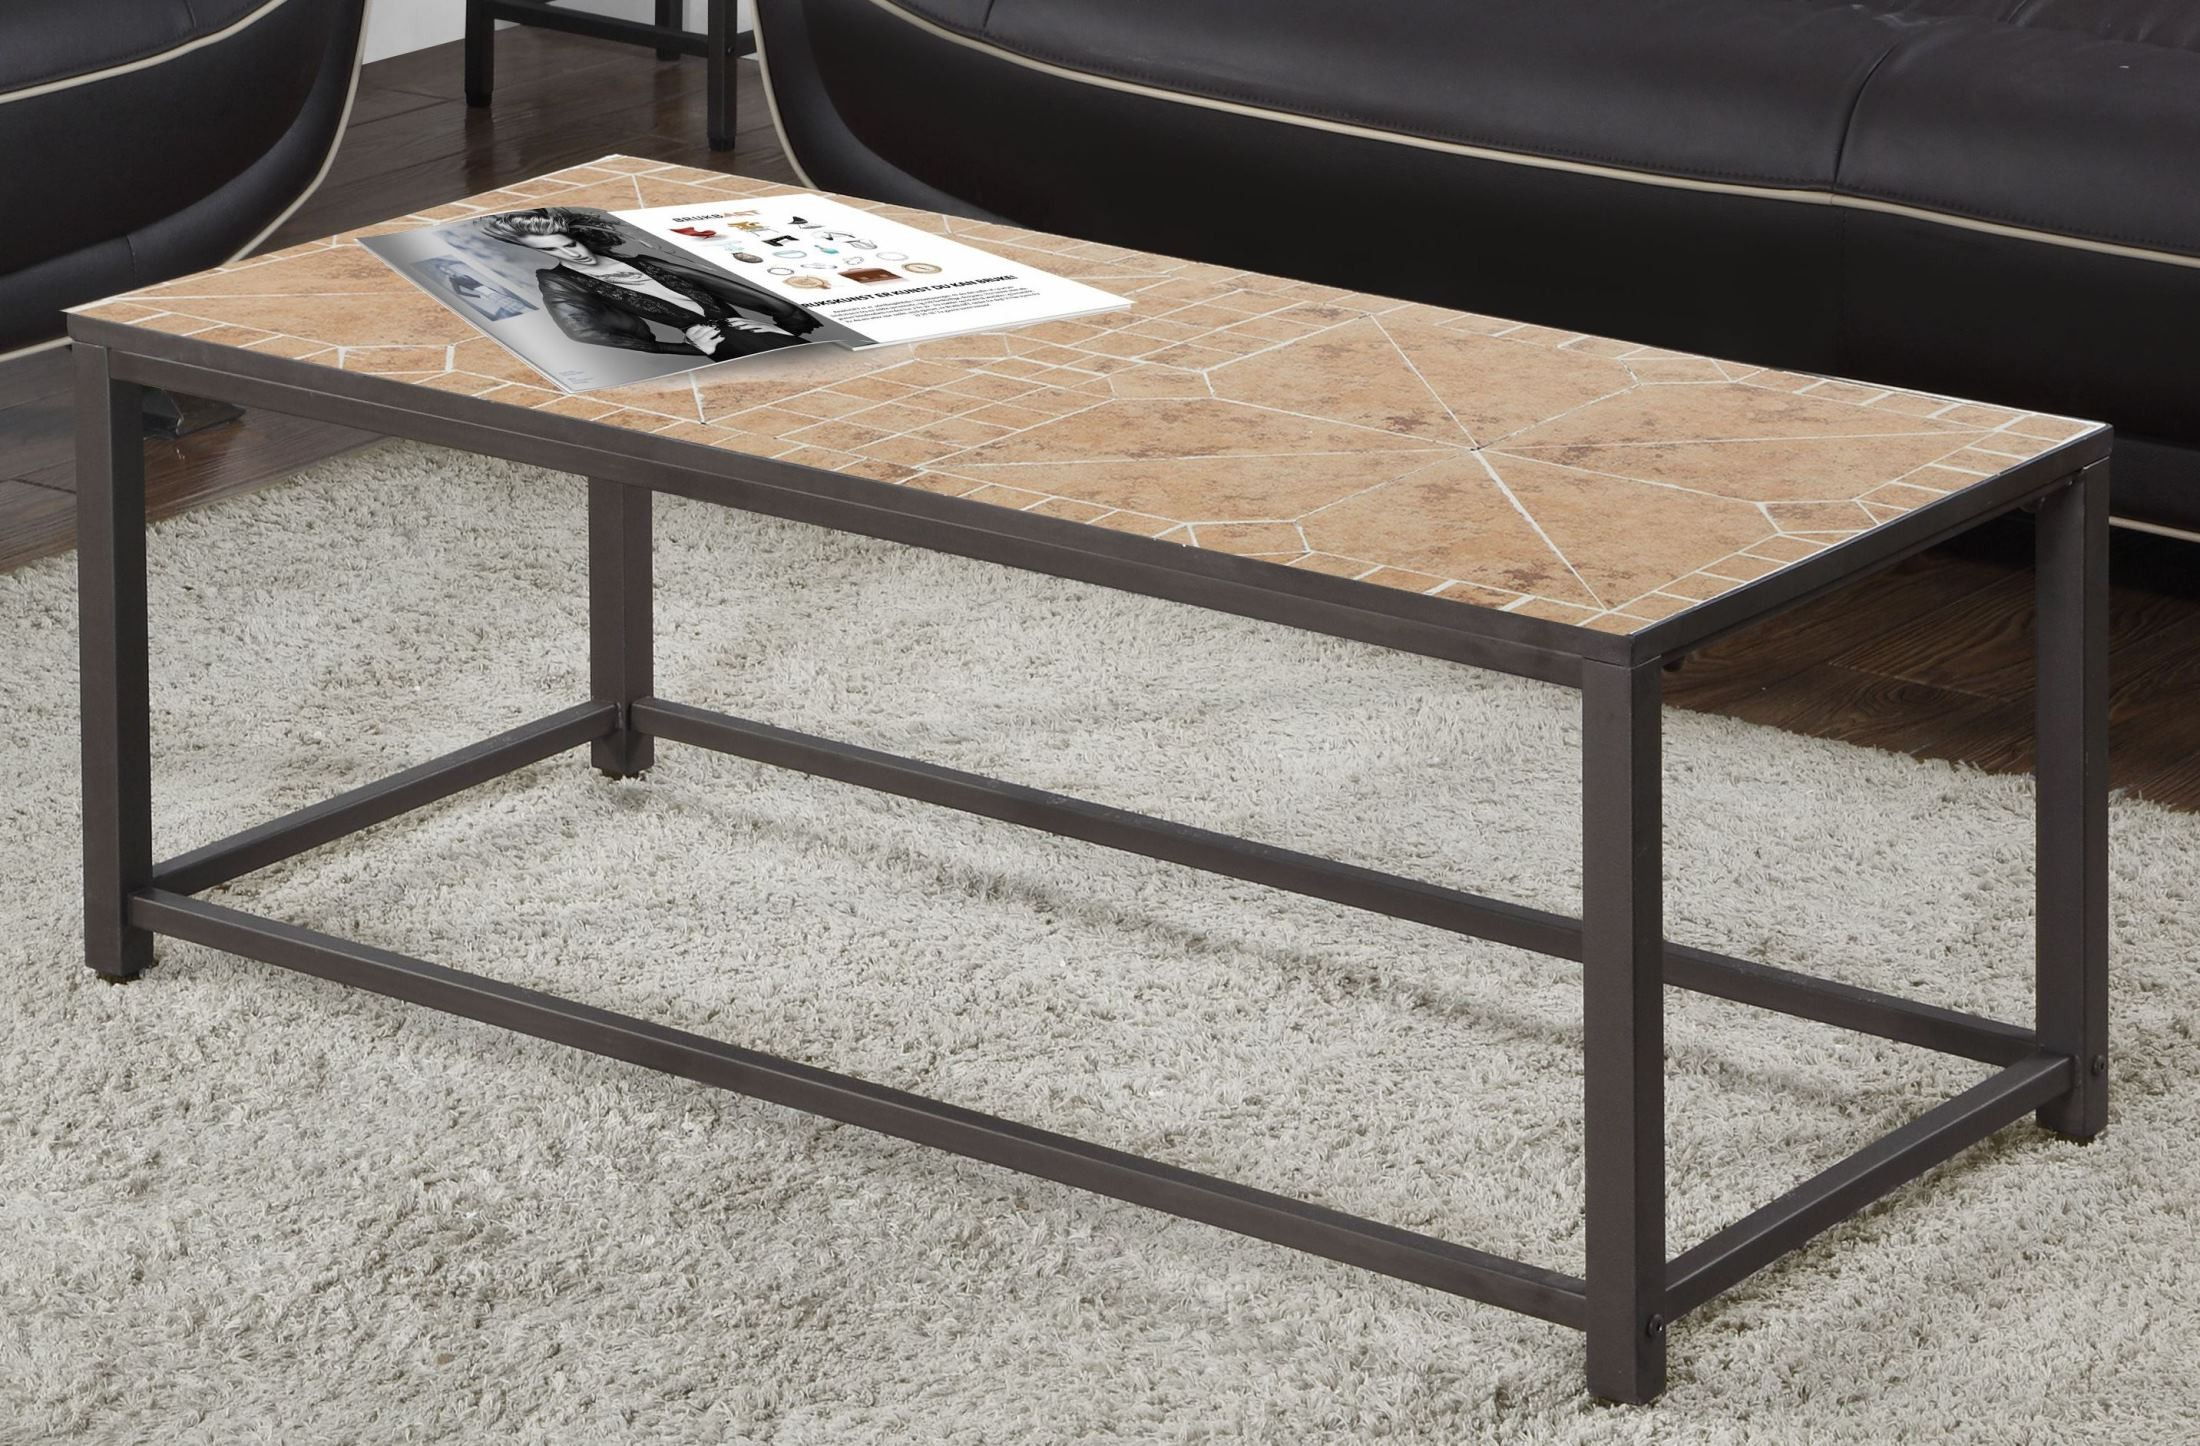 terracotta tile top coffee table from monarch coleman. Black Bedroom Furniture Sets. Home Design Ideas